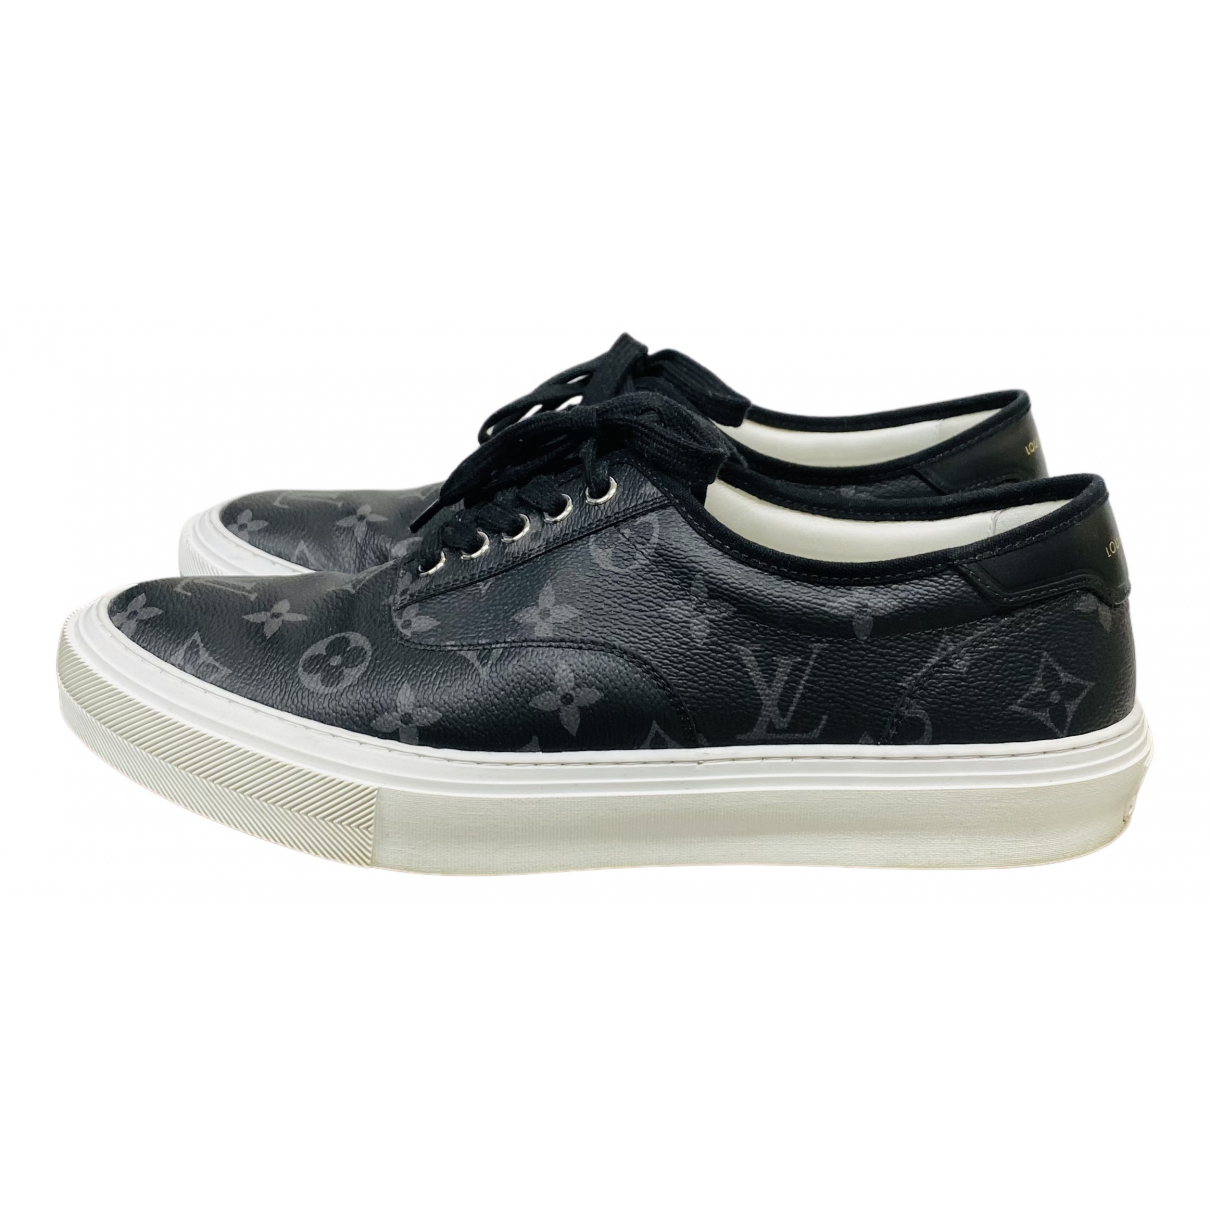 Louis Vuitton Trocadero Black Cloth Trainers for Men 42 EU